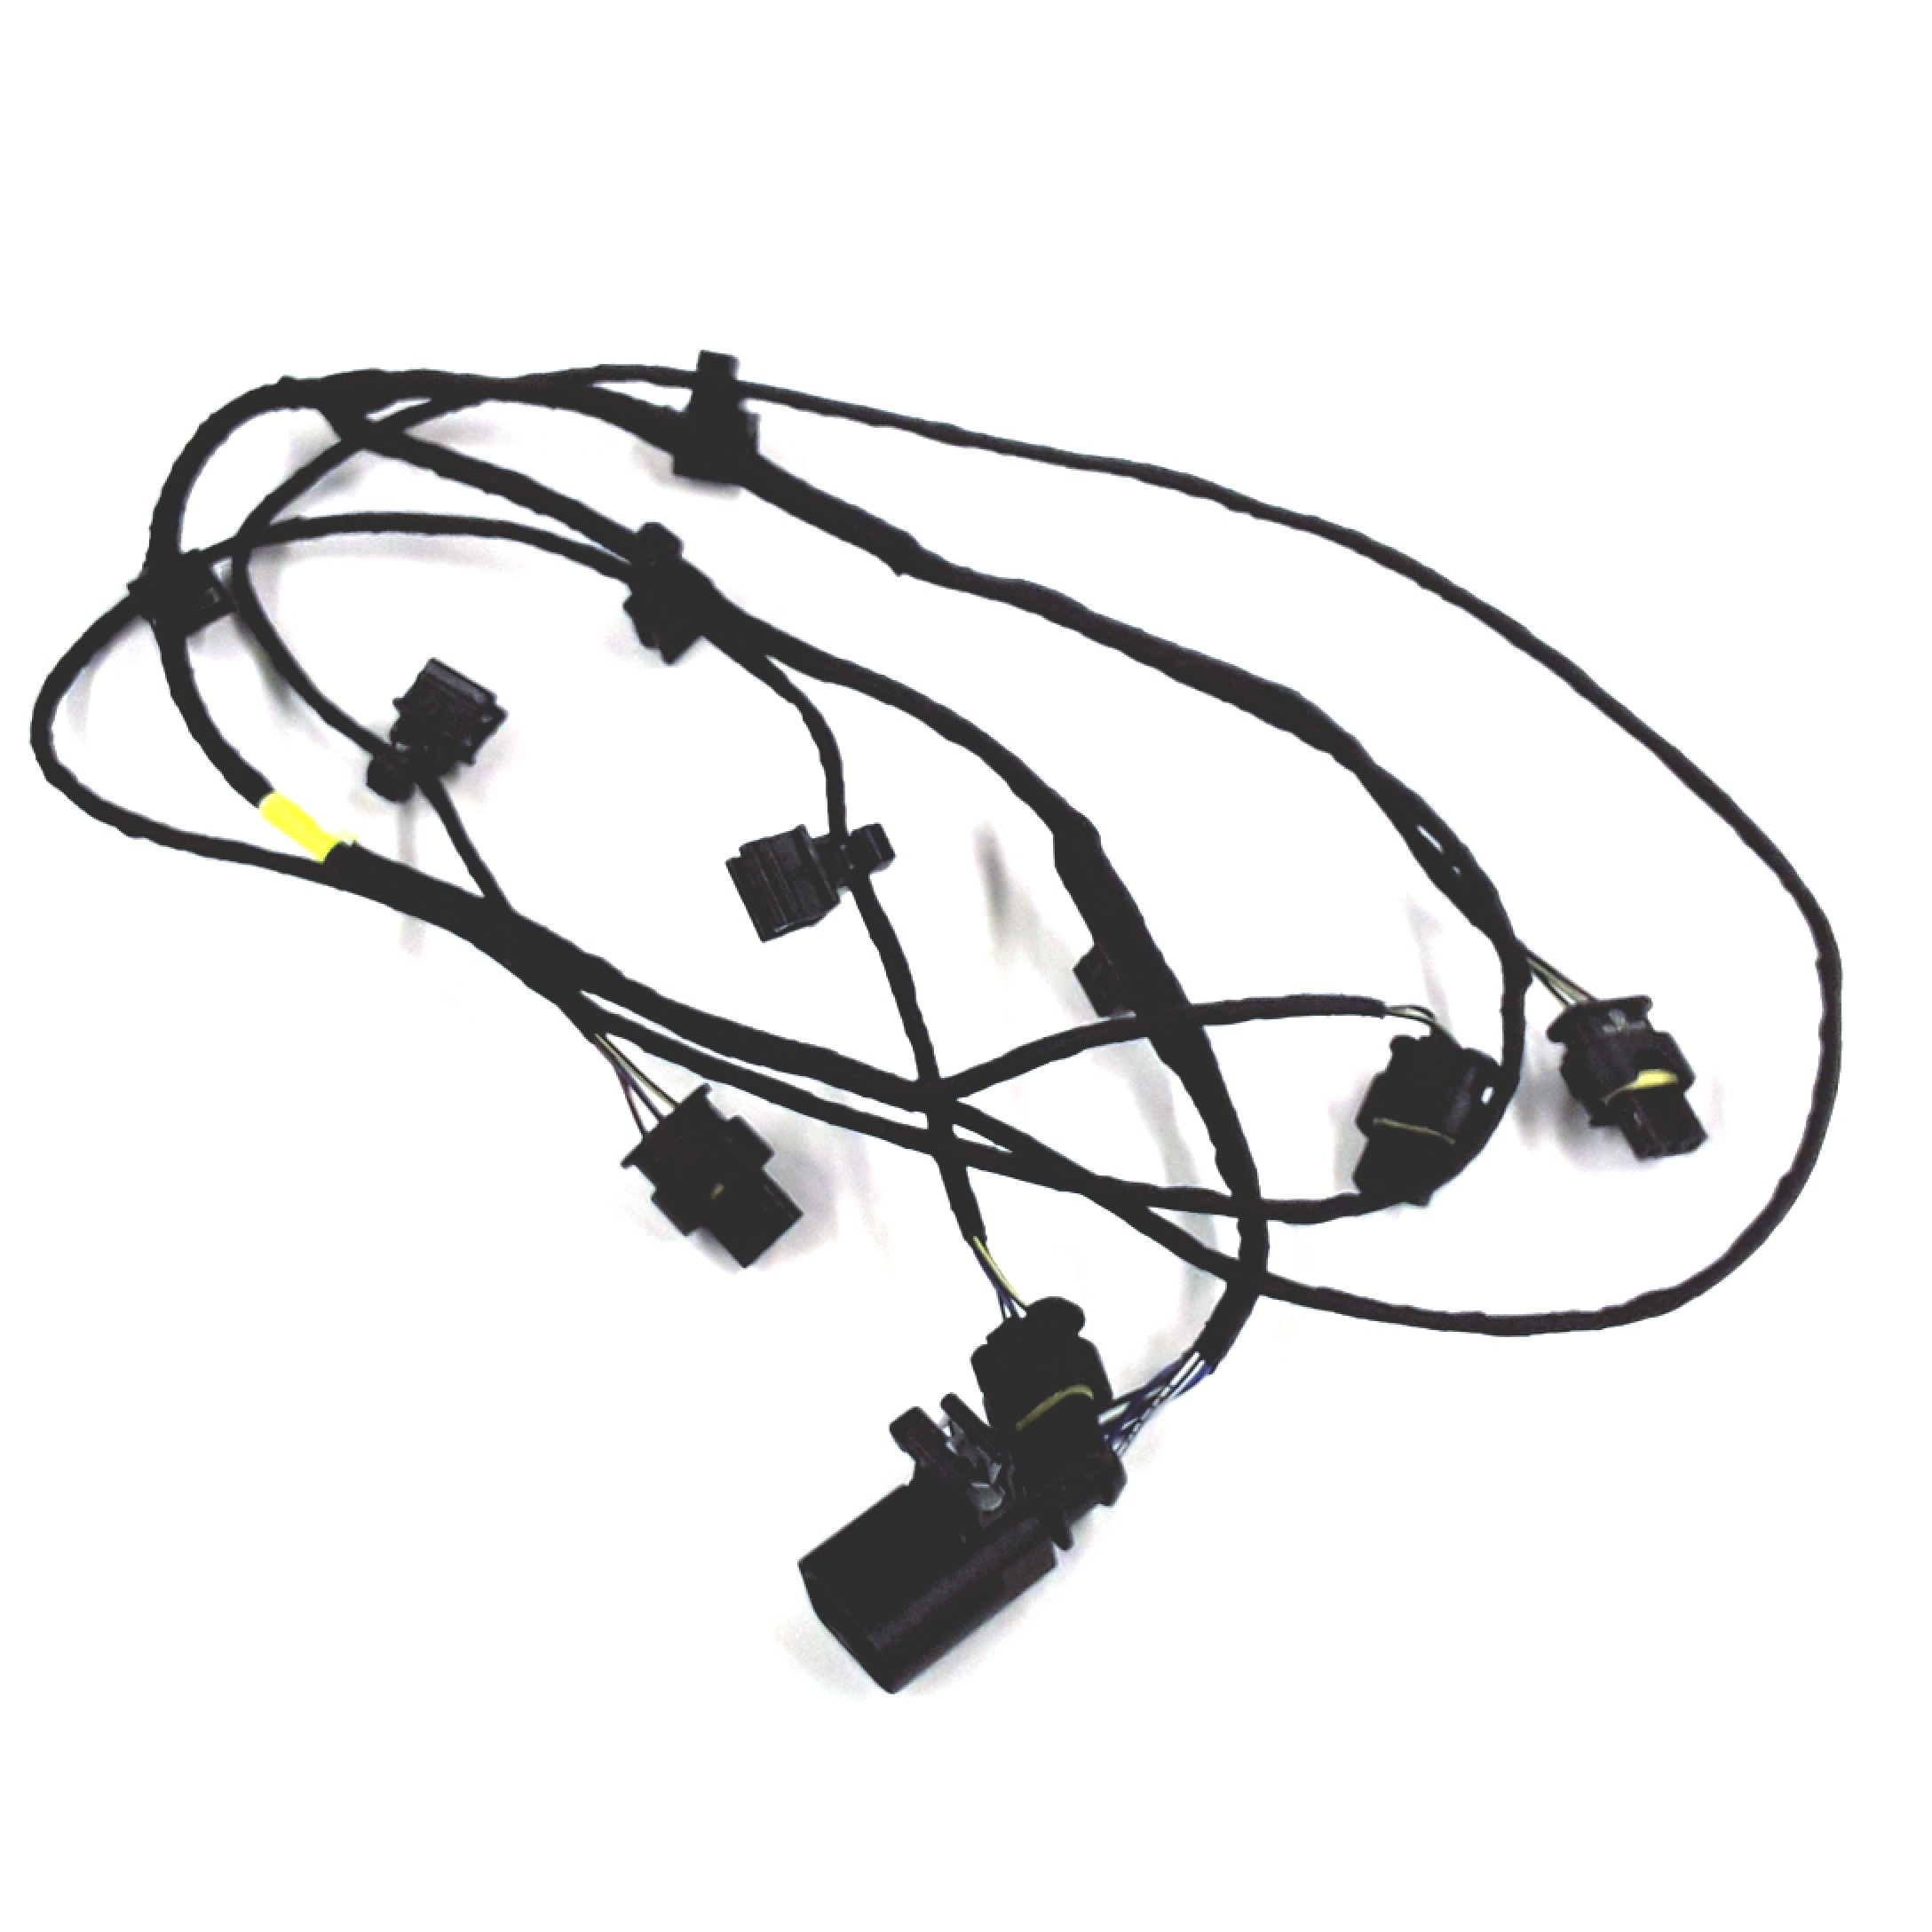 Audi Q5 Parking Aid System Wiring Harness  2013-17  To 04  30  2013 - 8r0971095c